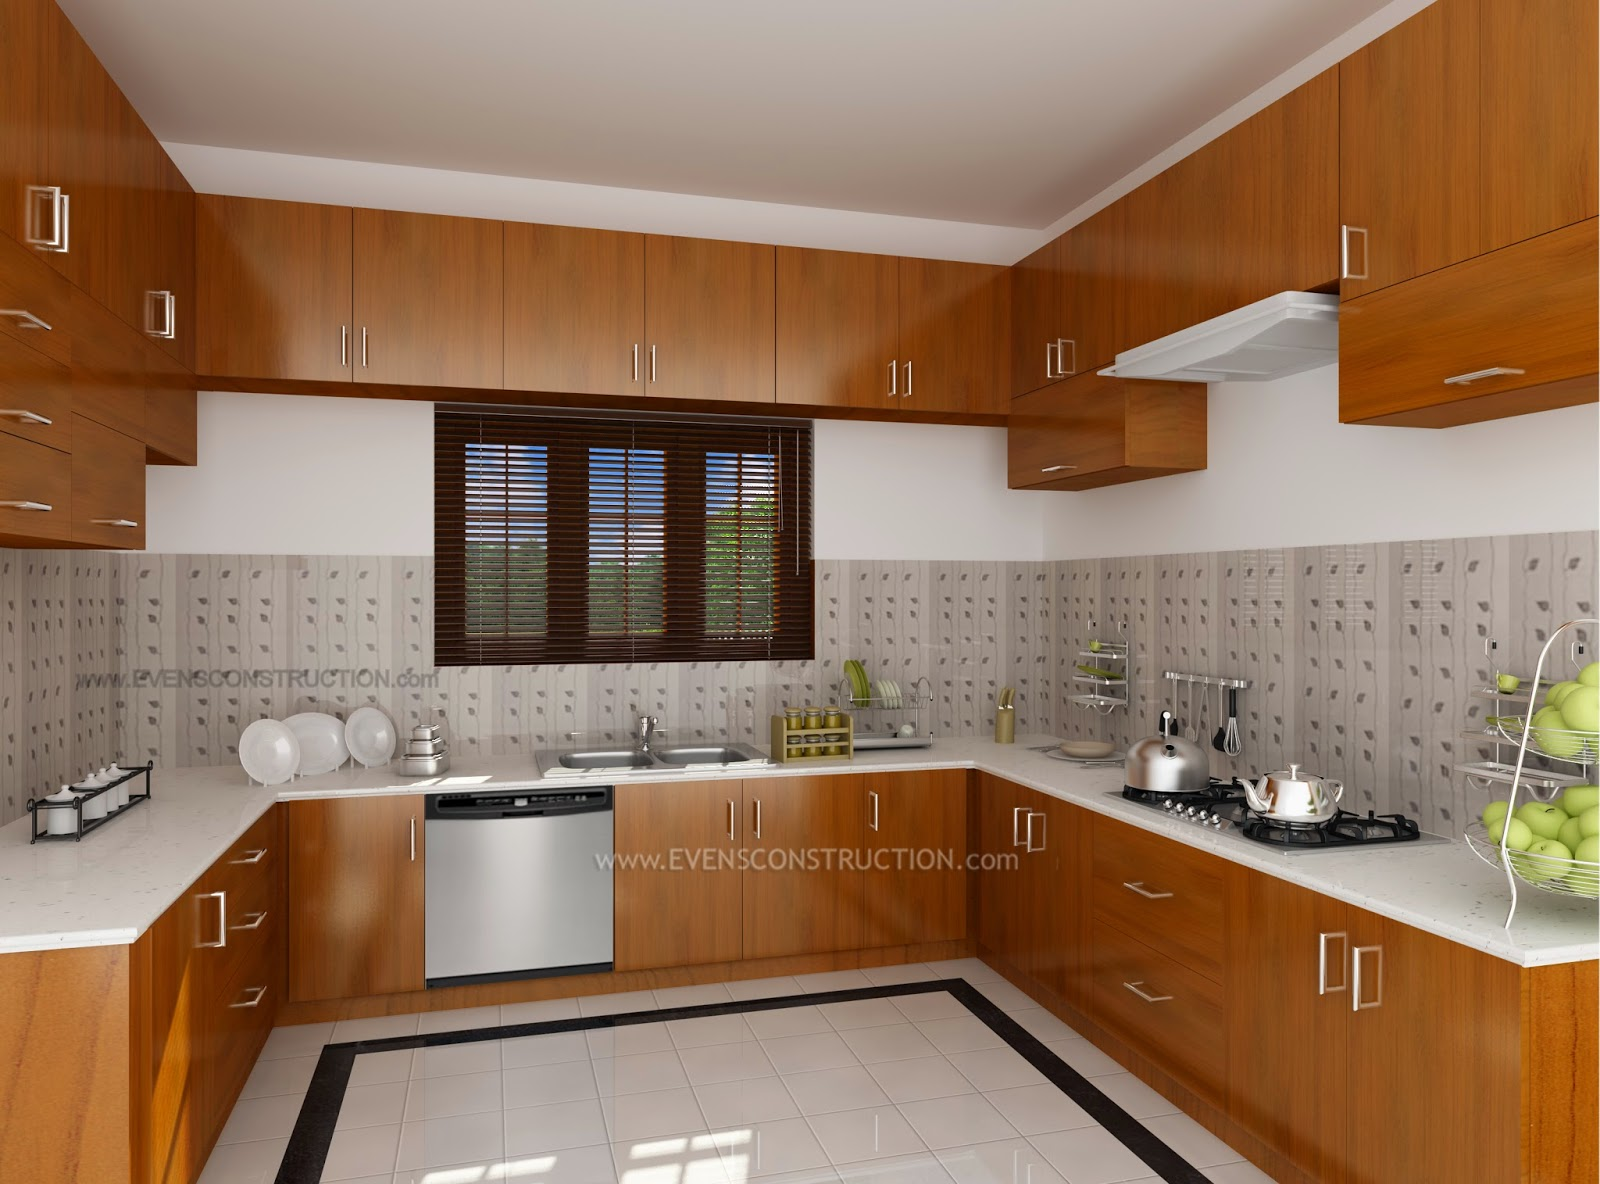 Evens construction pvt ltd october 2014 for Latest interior design for kitchen